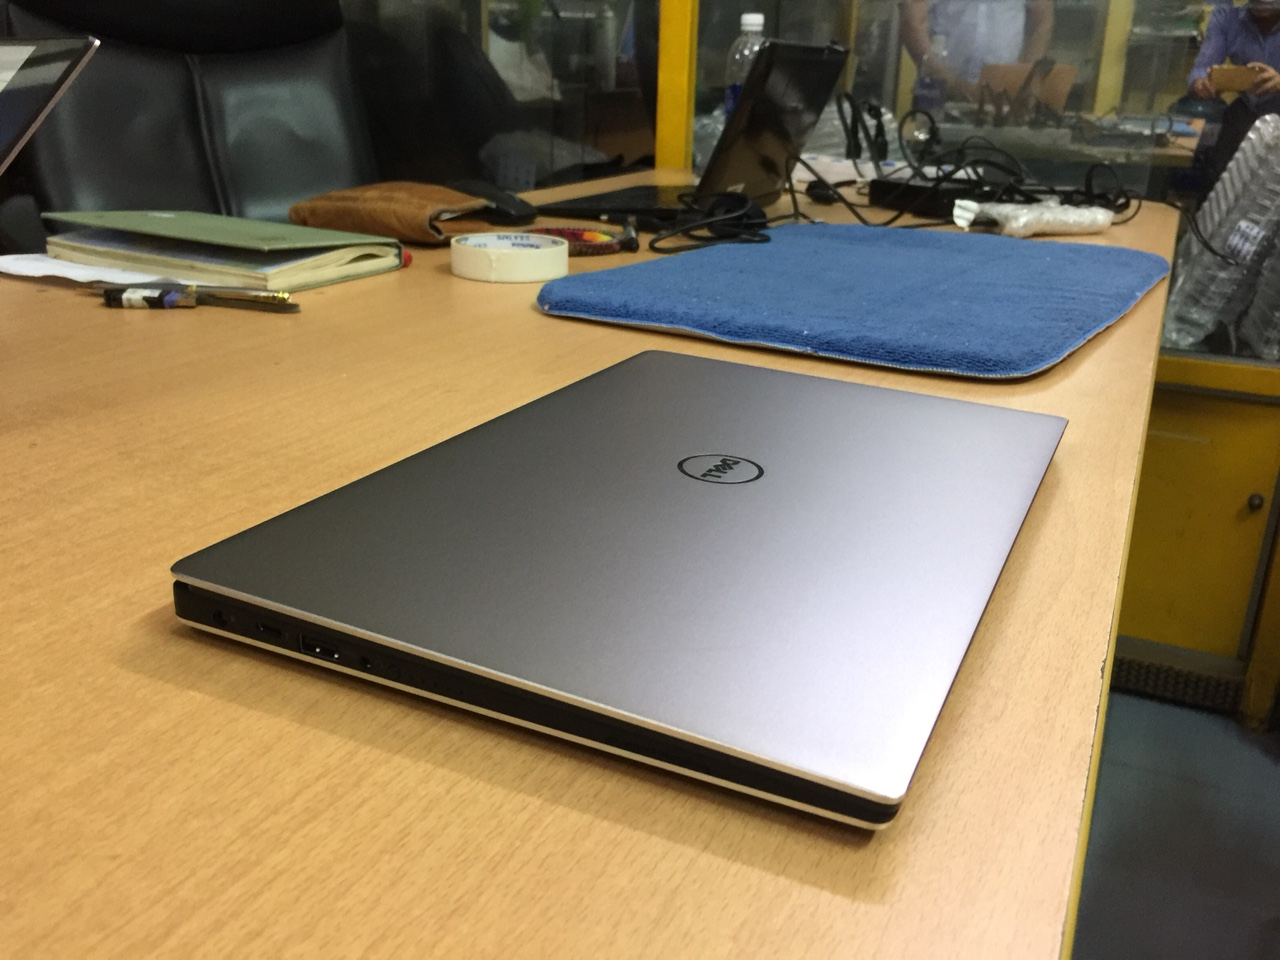 DELL XPS 13 9360 I5 7200U 8GB 256GB 13.3 3K TOUCH